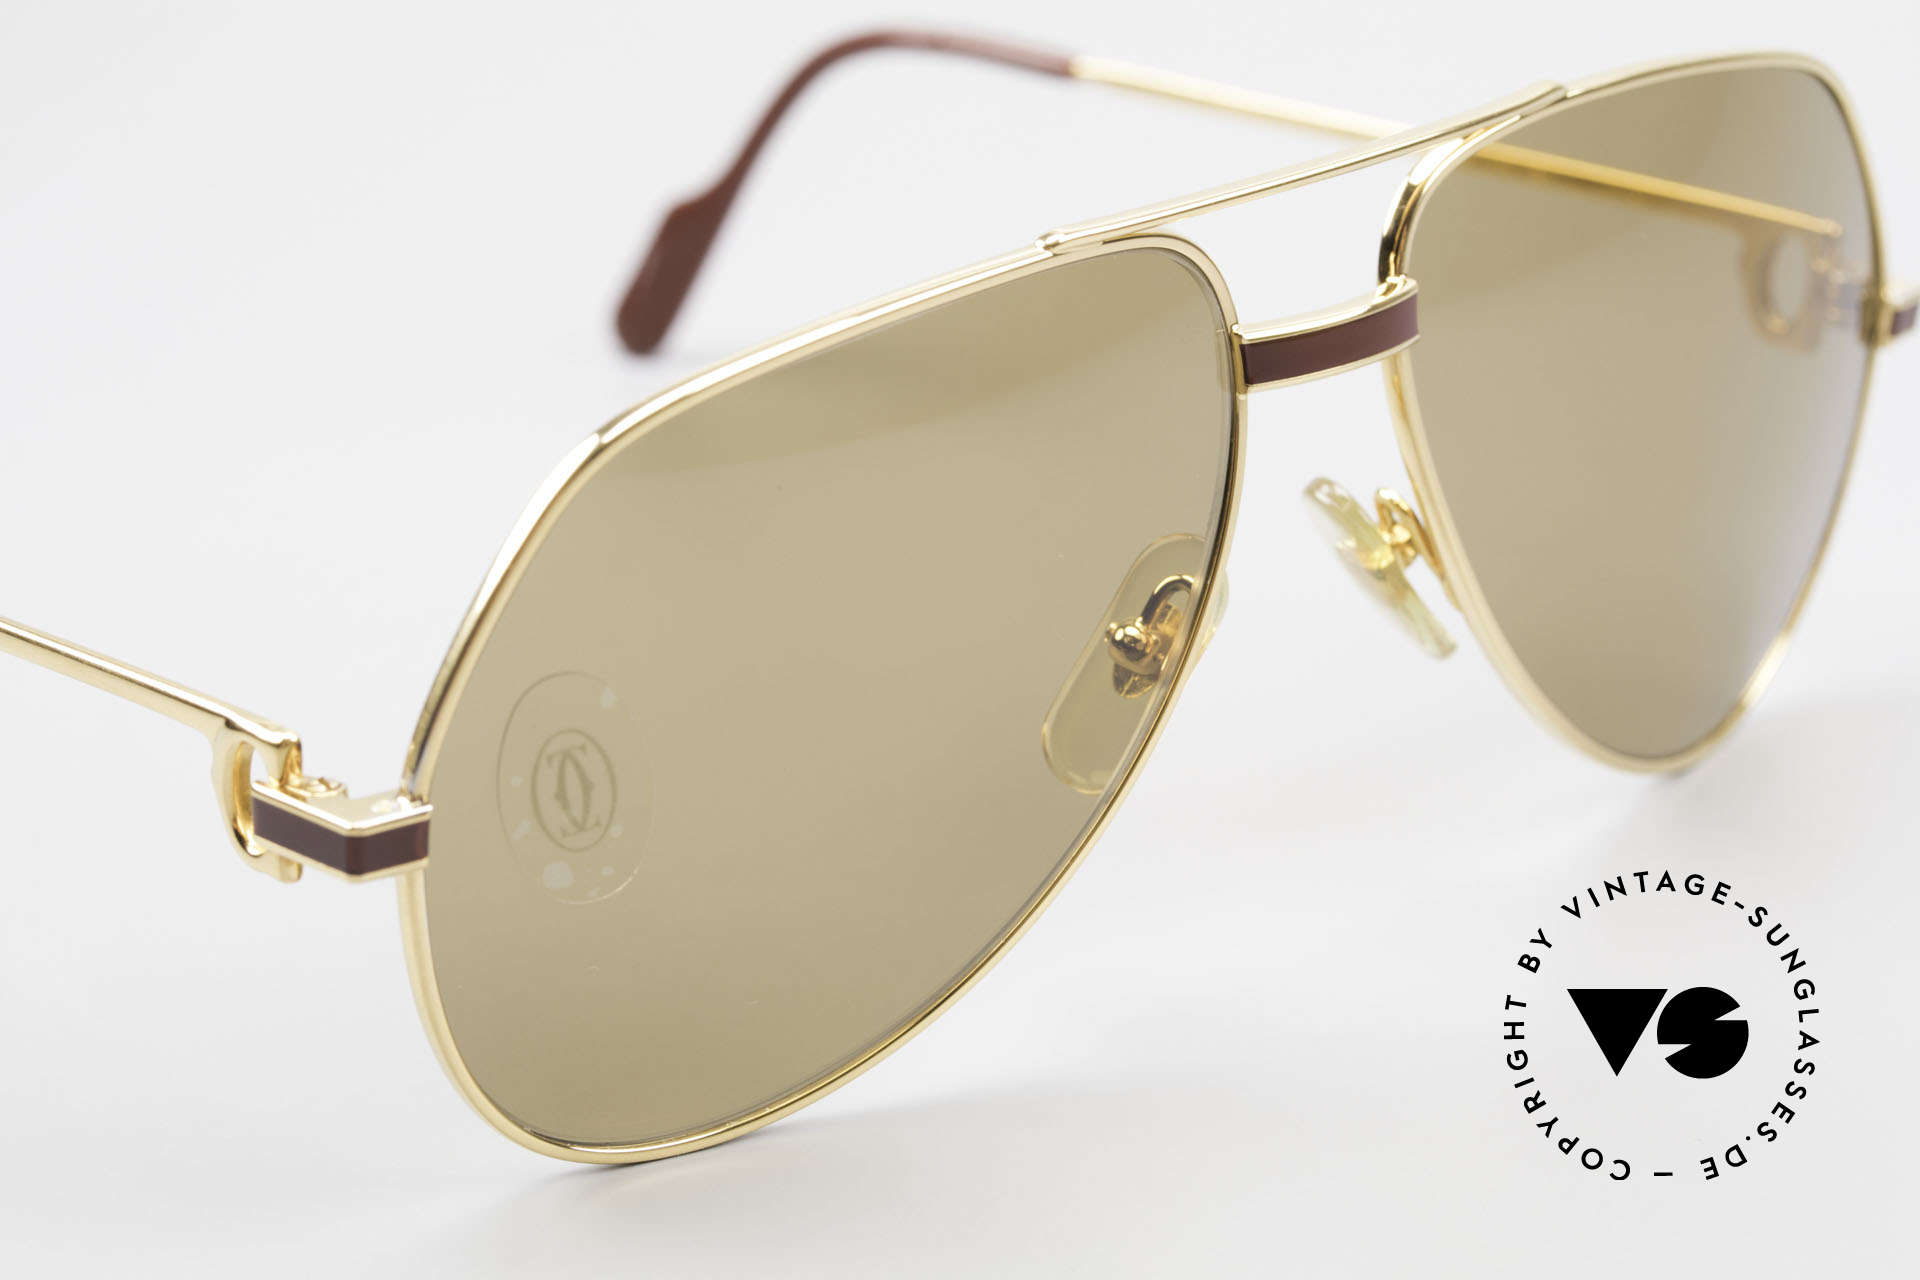 Cartier Vendome Laque - M Mystic Cartier Mineral Lenses, ! BREATH on the sun lenses to make the logo VISIBLE!, Made for Men